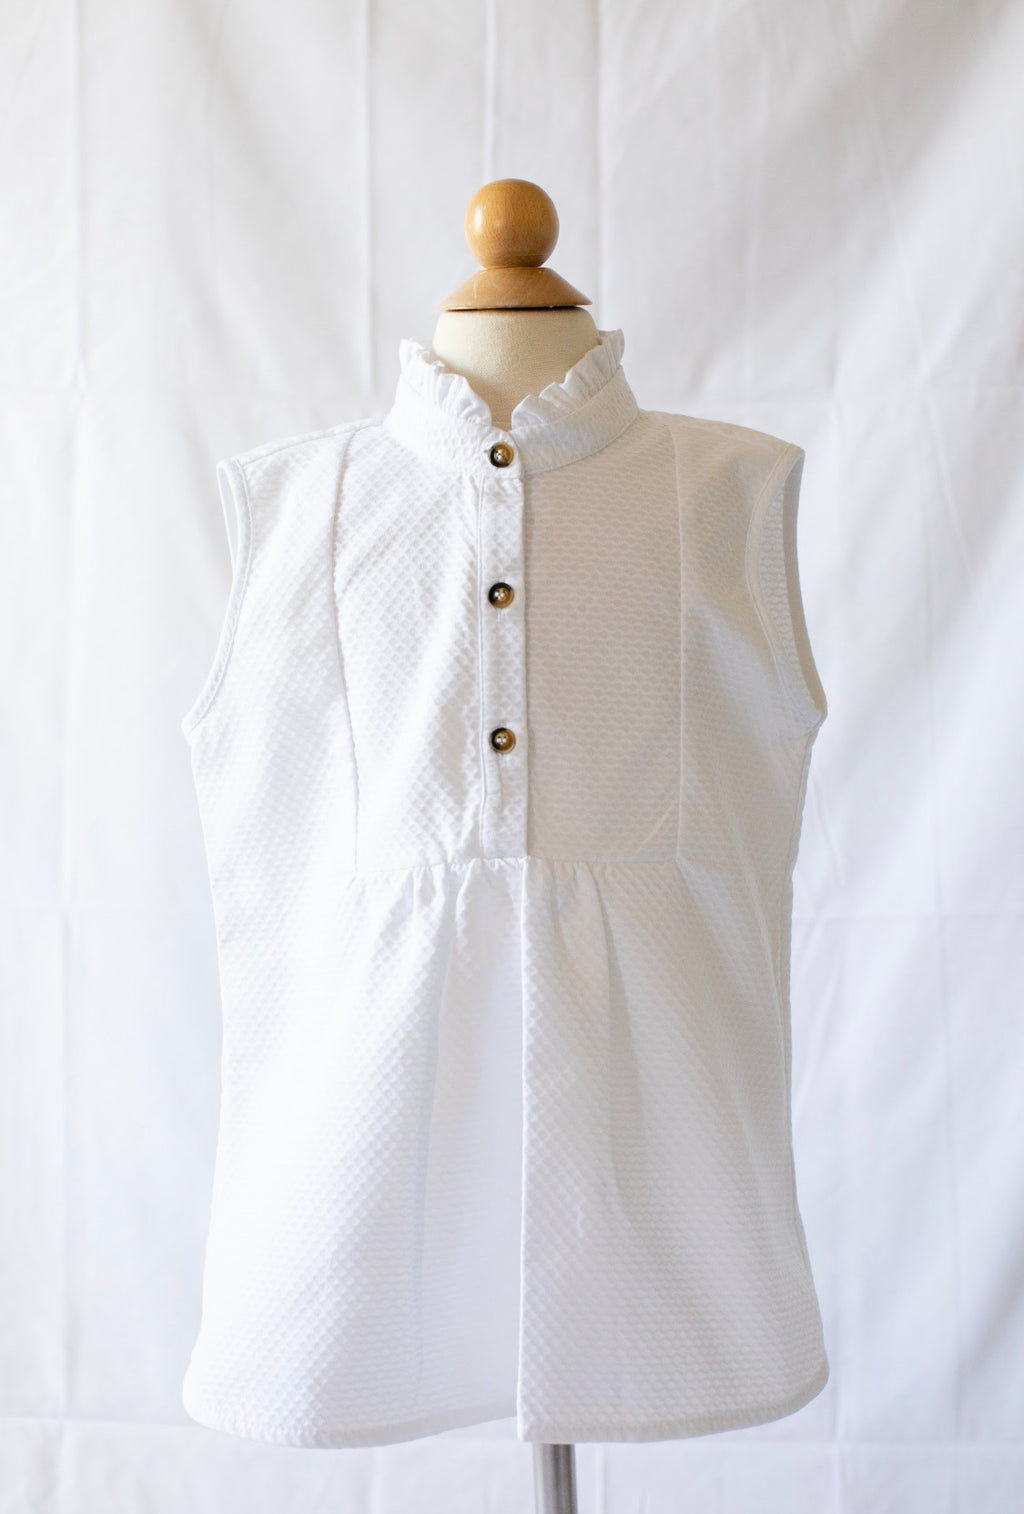 Sleeveless Tucker Top - White Pique - Born Childrens Boutique